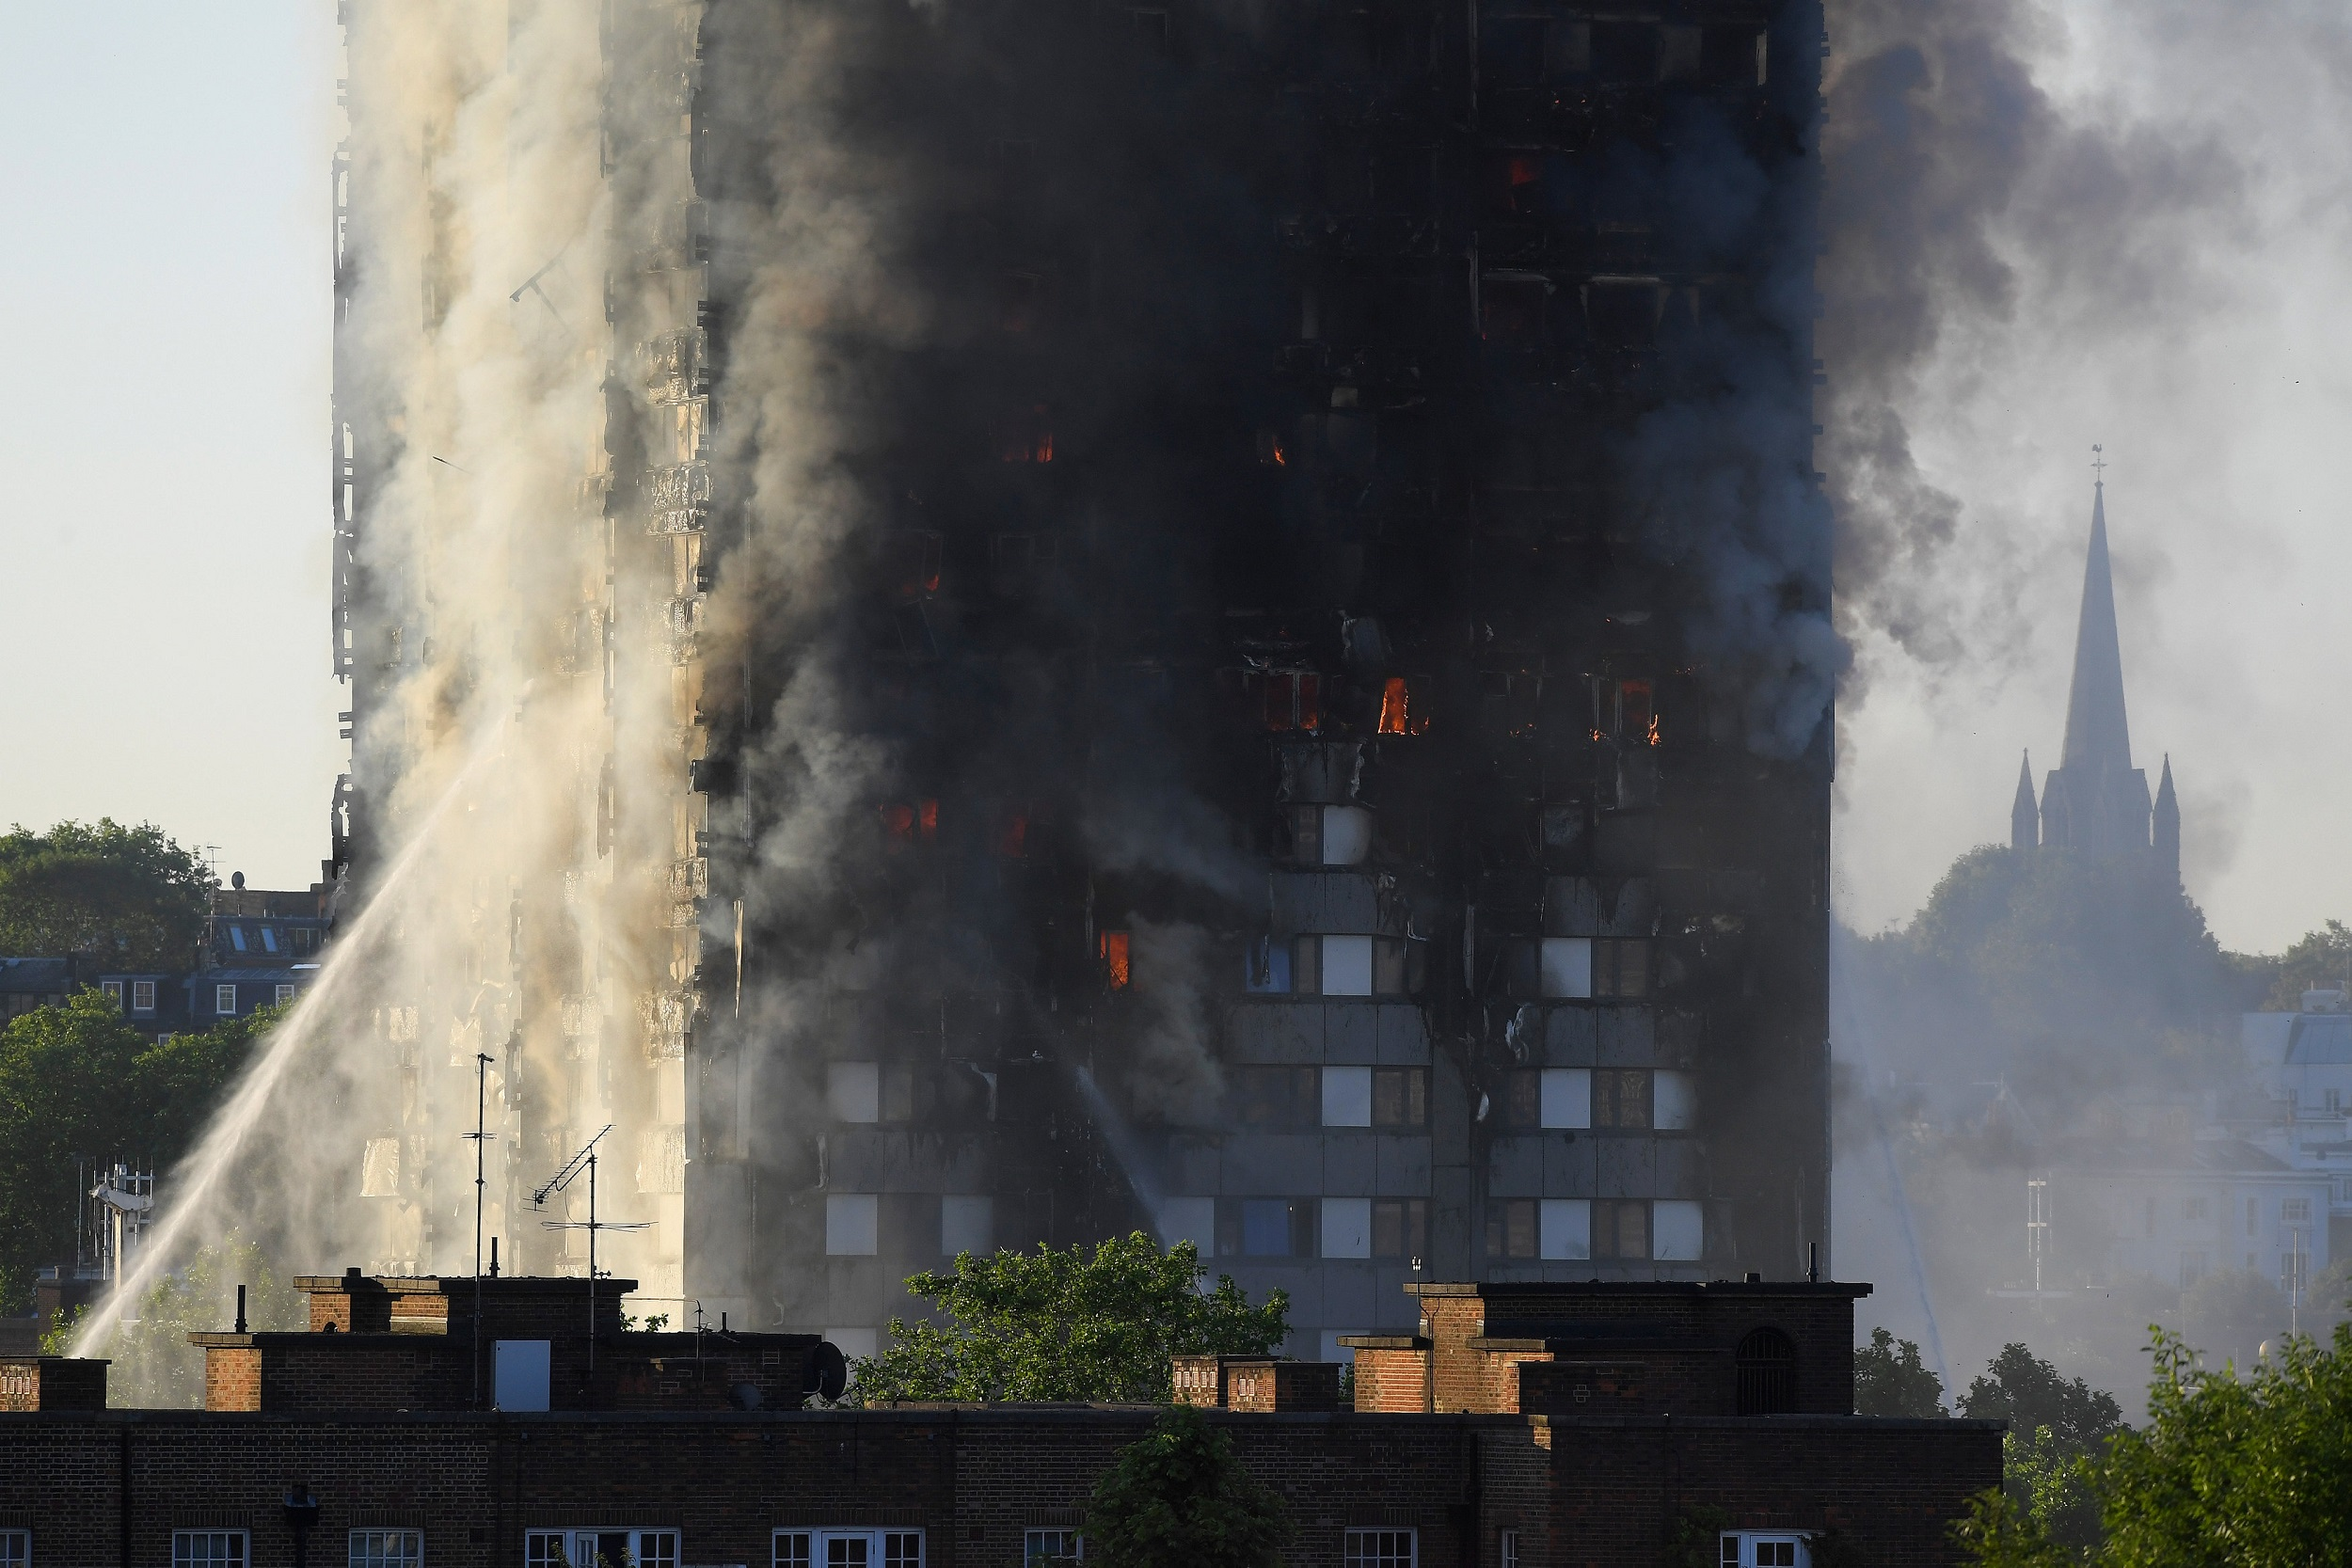 WEB_PHOTO_LONDON_FIRE_14_06_2017